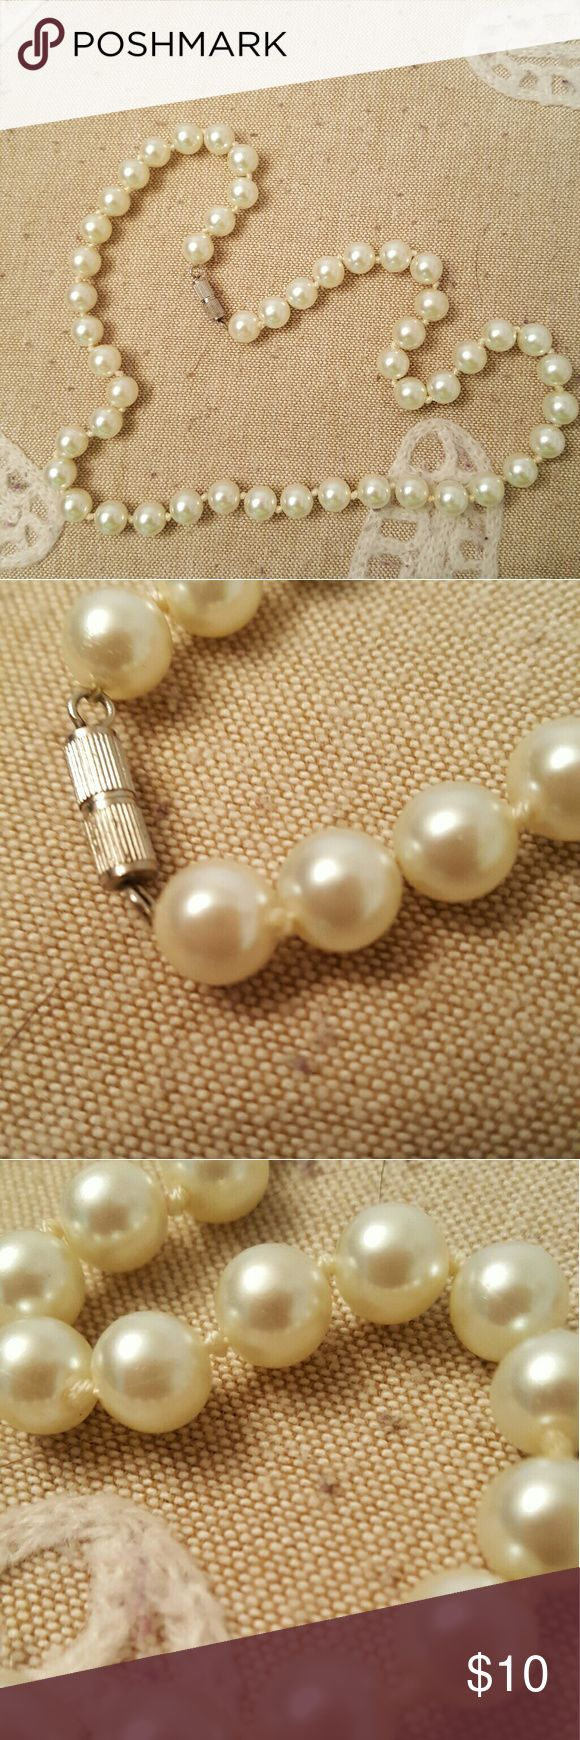 BDAY BOGO SALE! Pearl strand necklace Faux pearls (I think they are faux). 18 inches long strand. Brand new without tags.Its my birthday this weekend so let's have a sale! Buy one piece of jewelry and get a 2nd for just $1! Just add to a bundle and make offer. Jewelry Necklaces